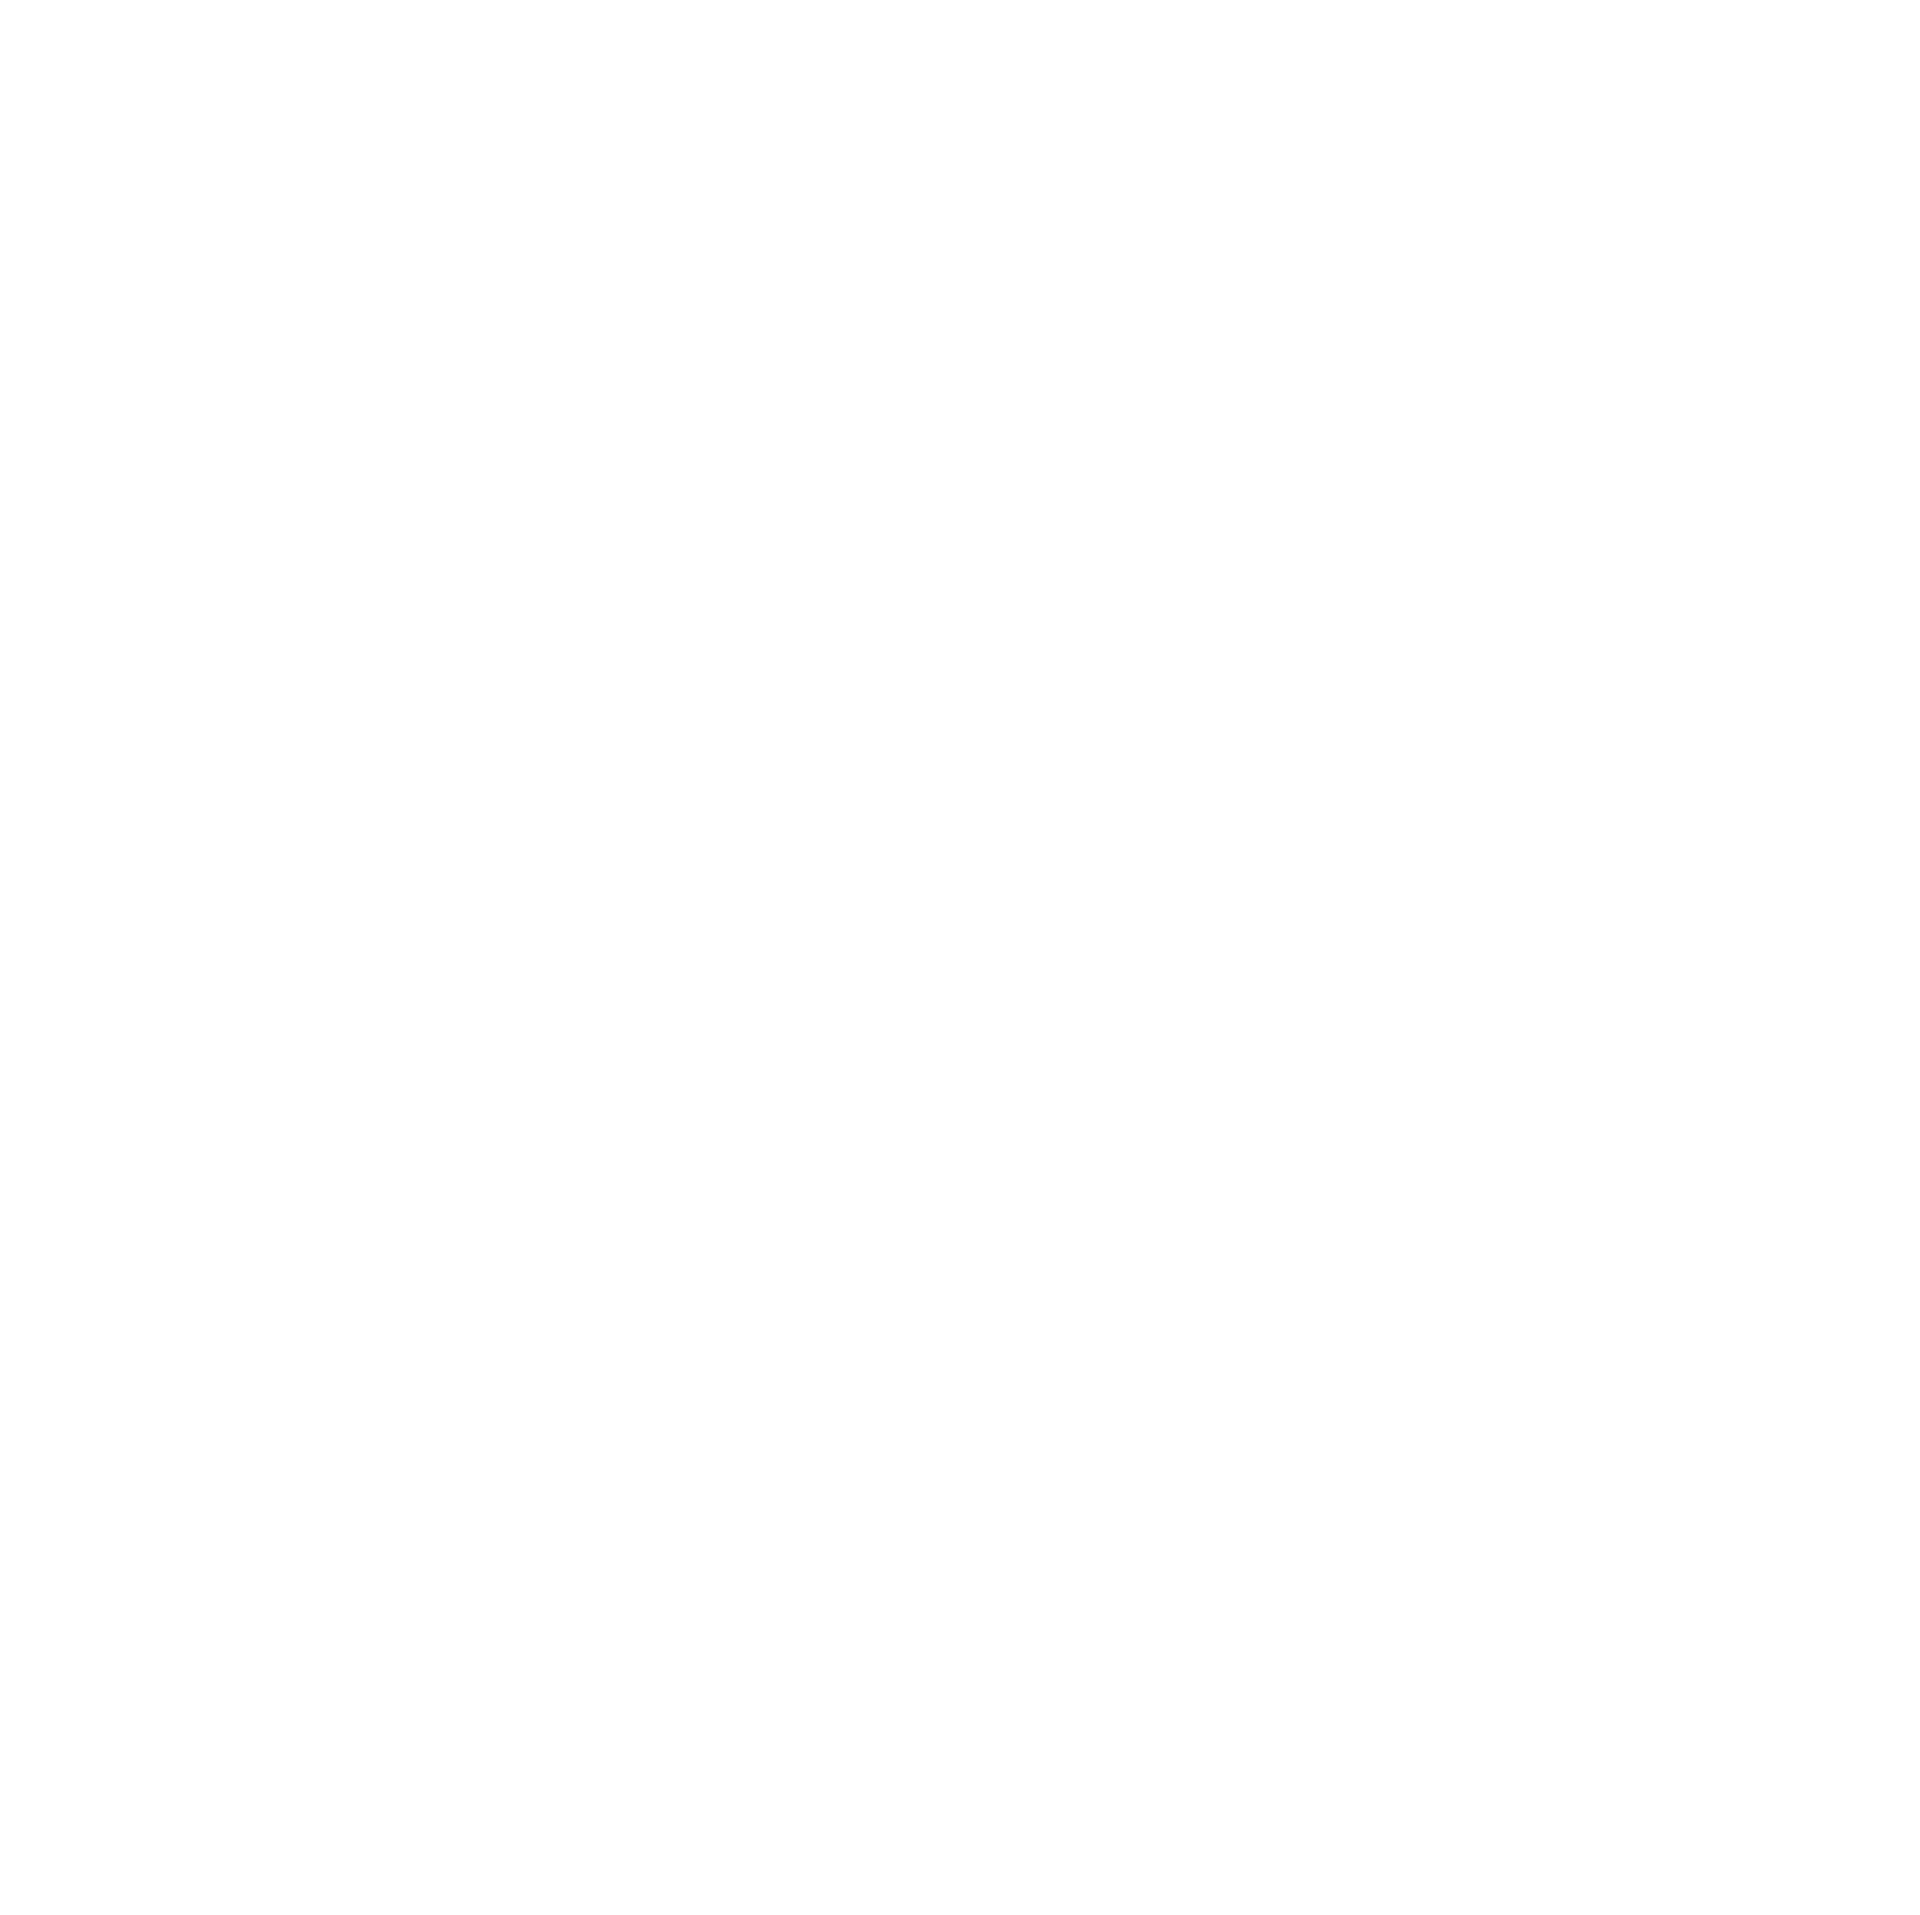 The lakes GT